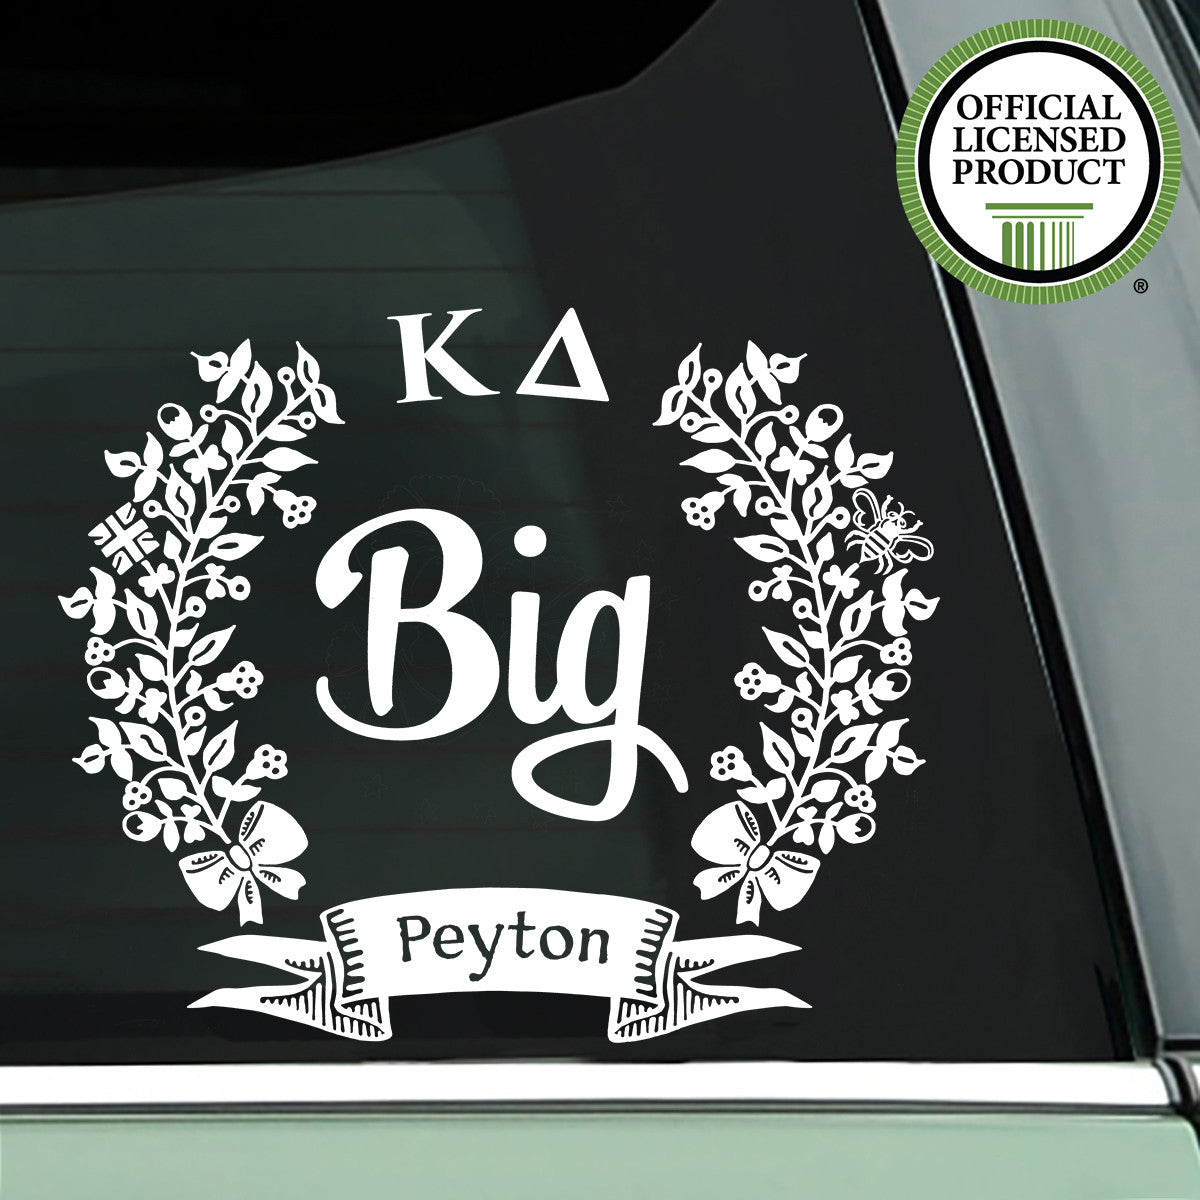 Brit and Bee Sorority Big Decal - Kappa Delta - White